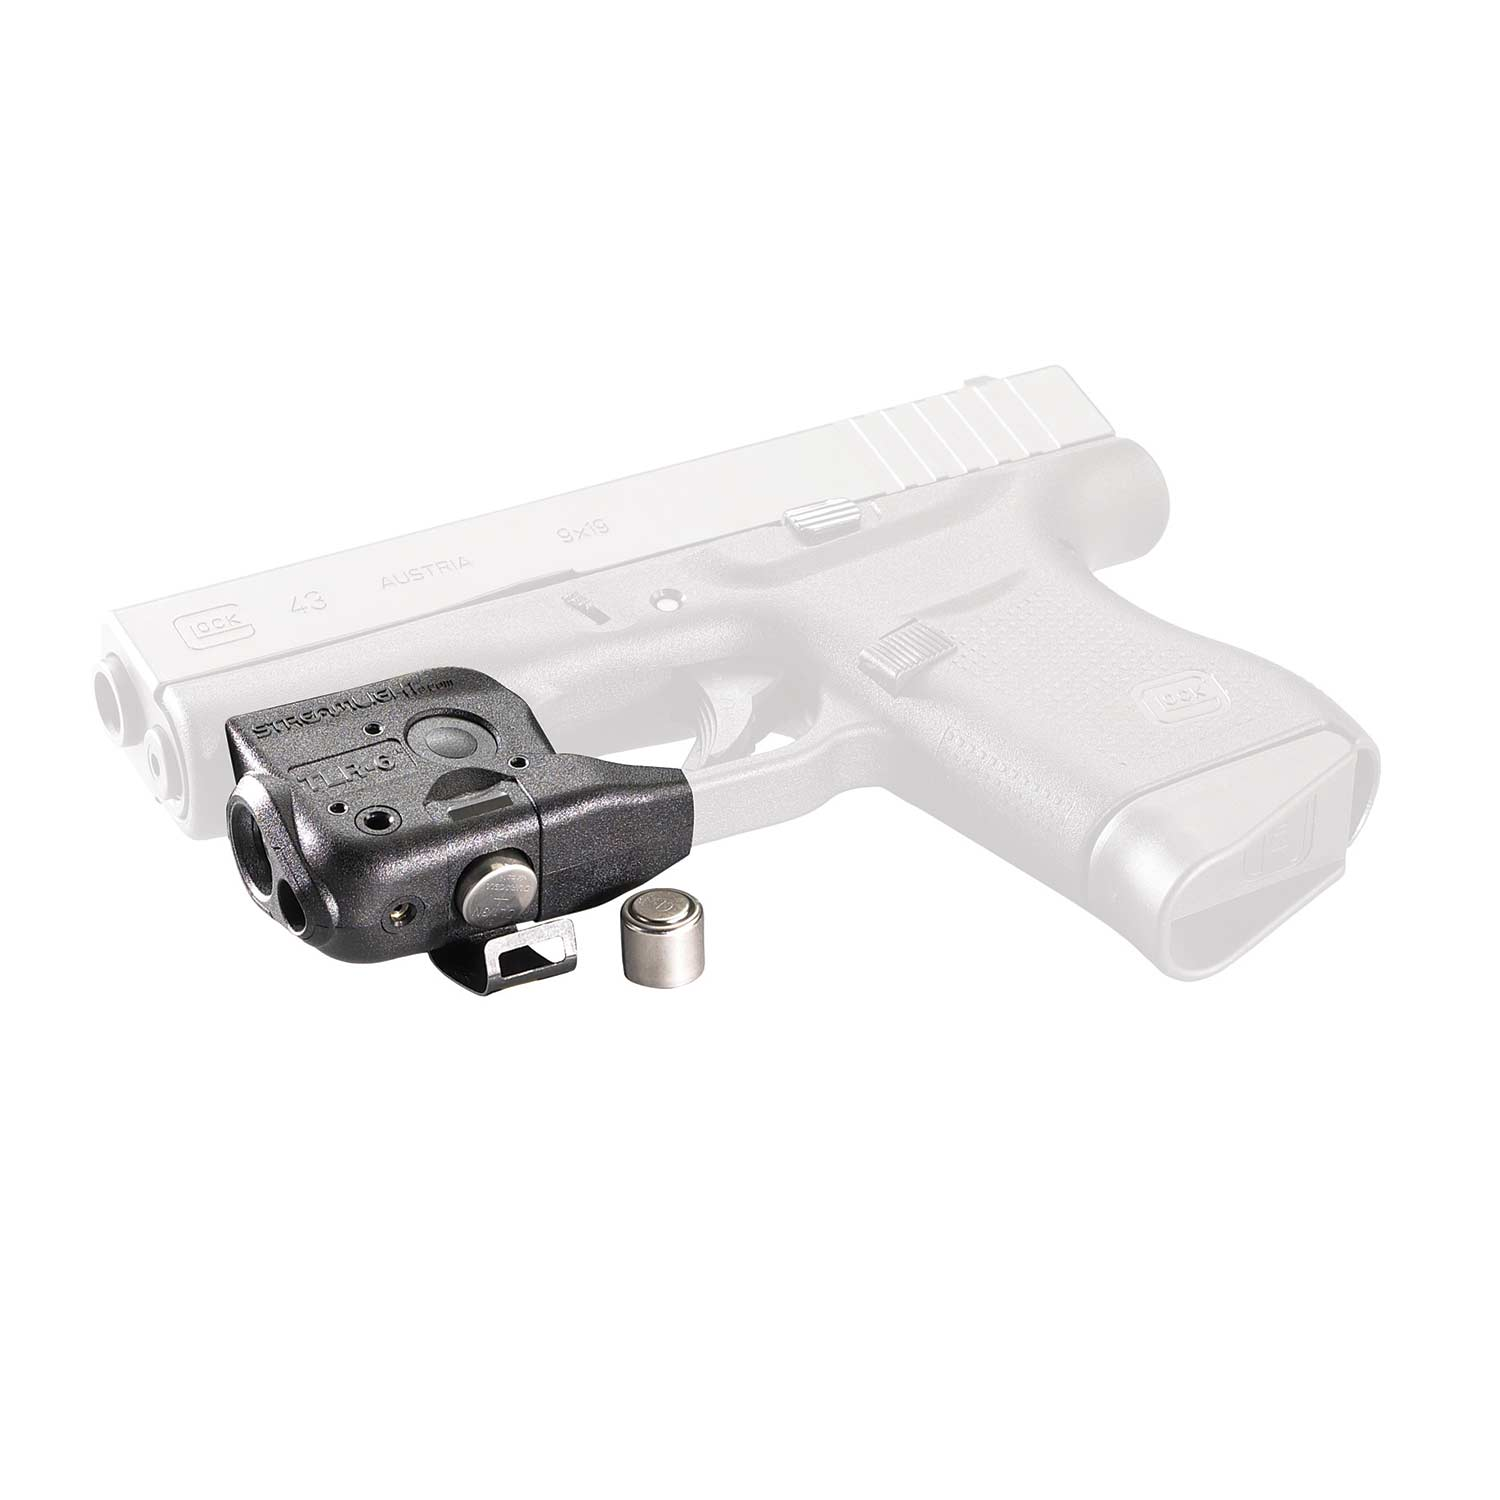 TLR-6 Trigger Guard Mounted Weapon Light with Red Aiming Laser